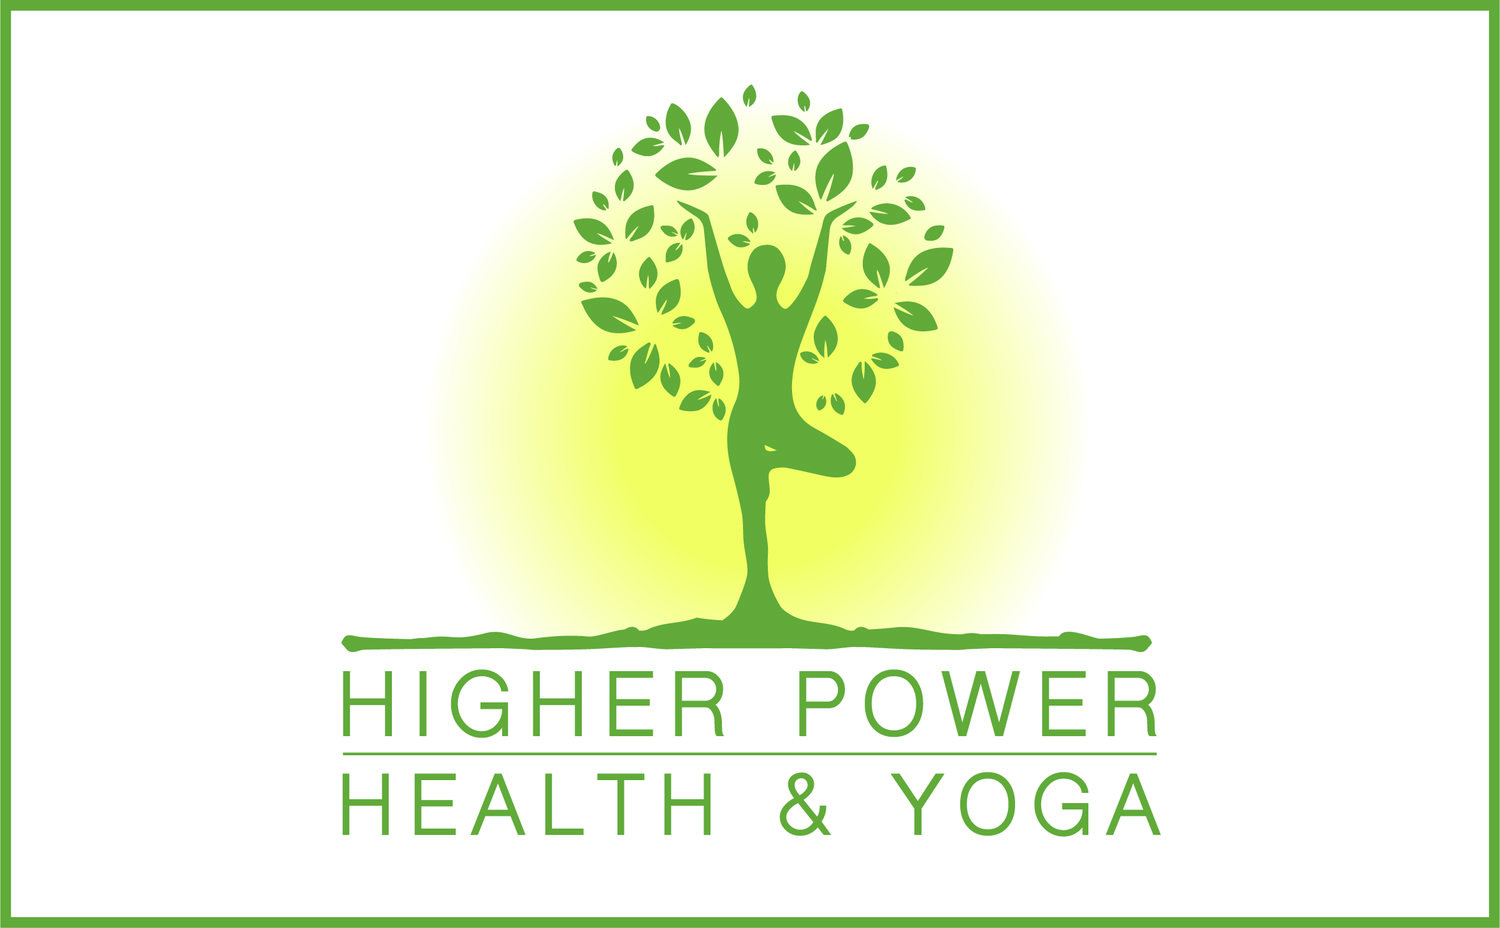 Higher Power Health